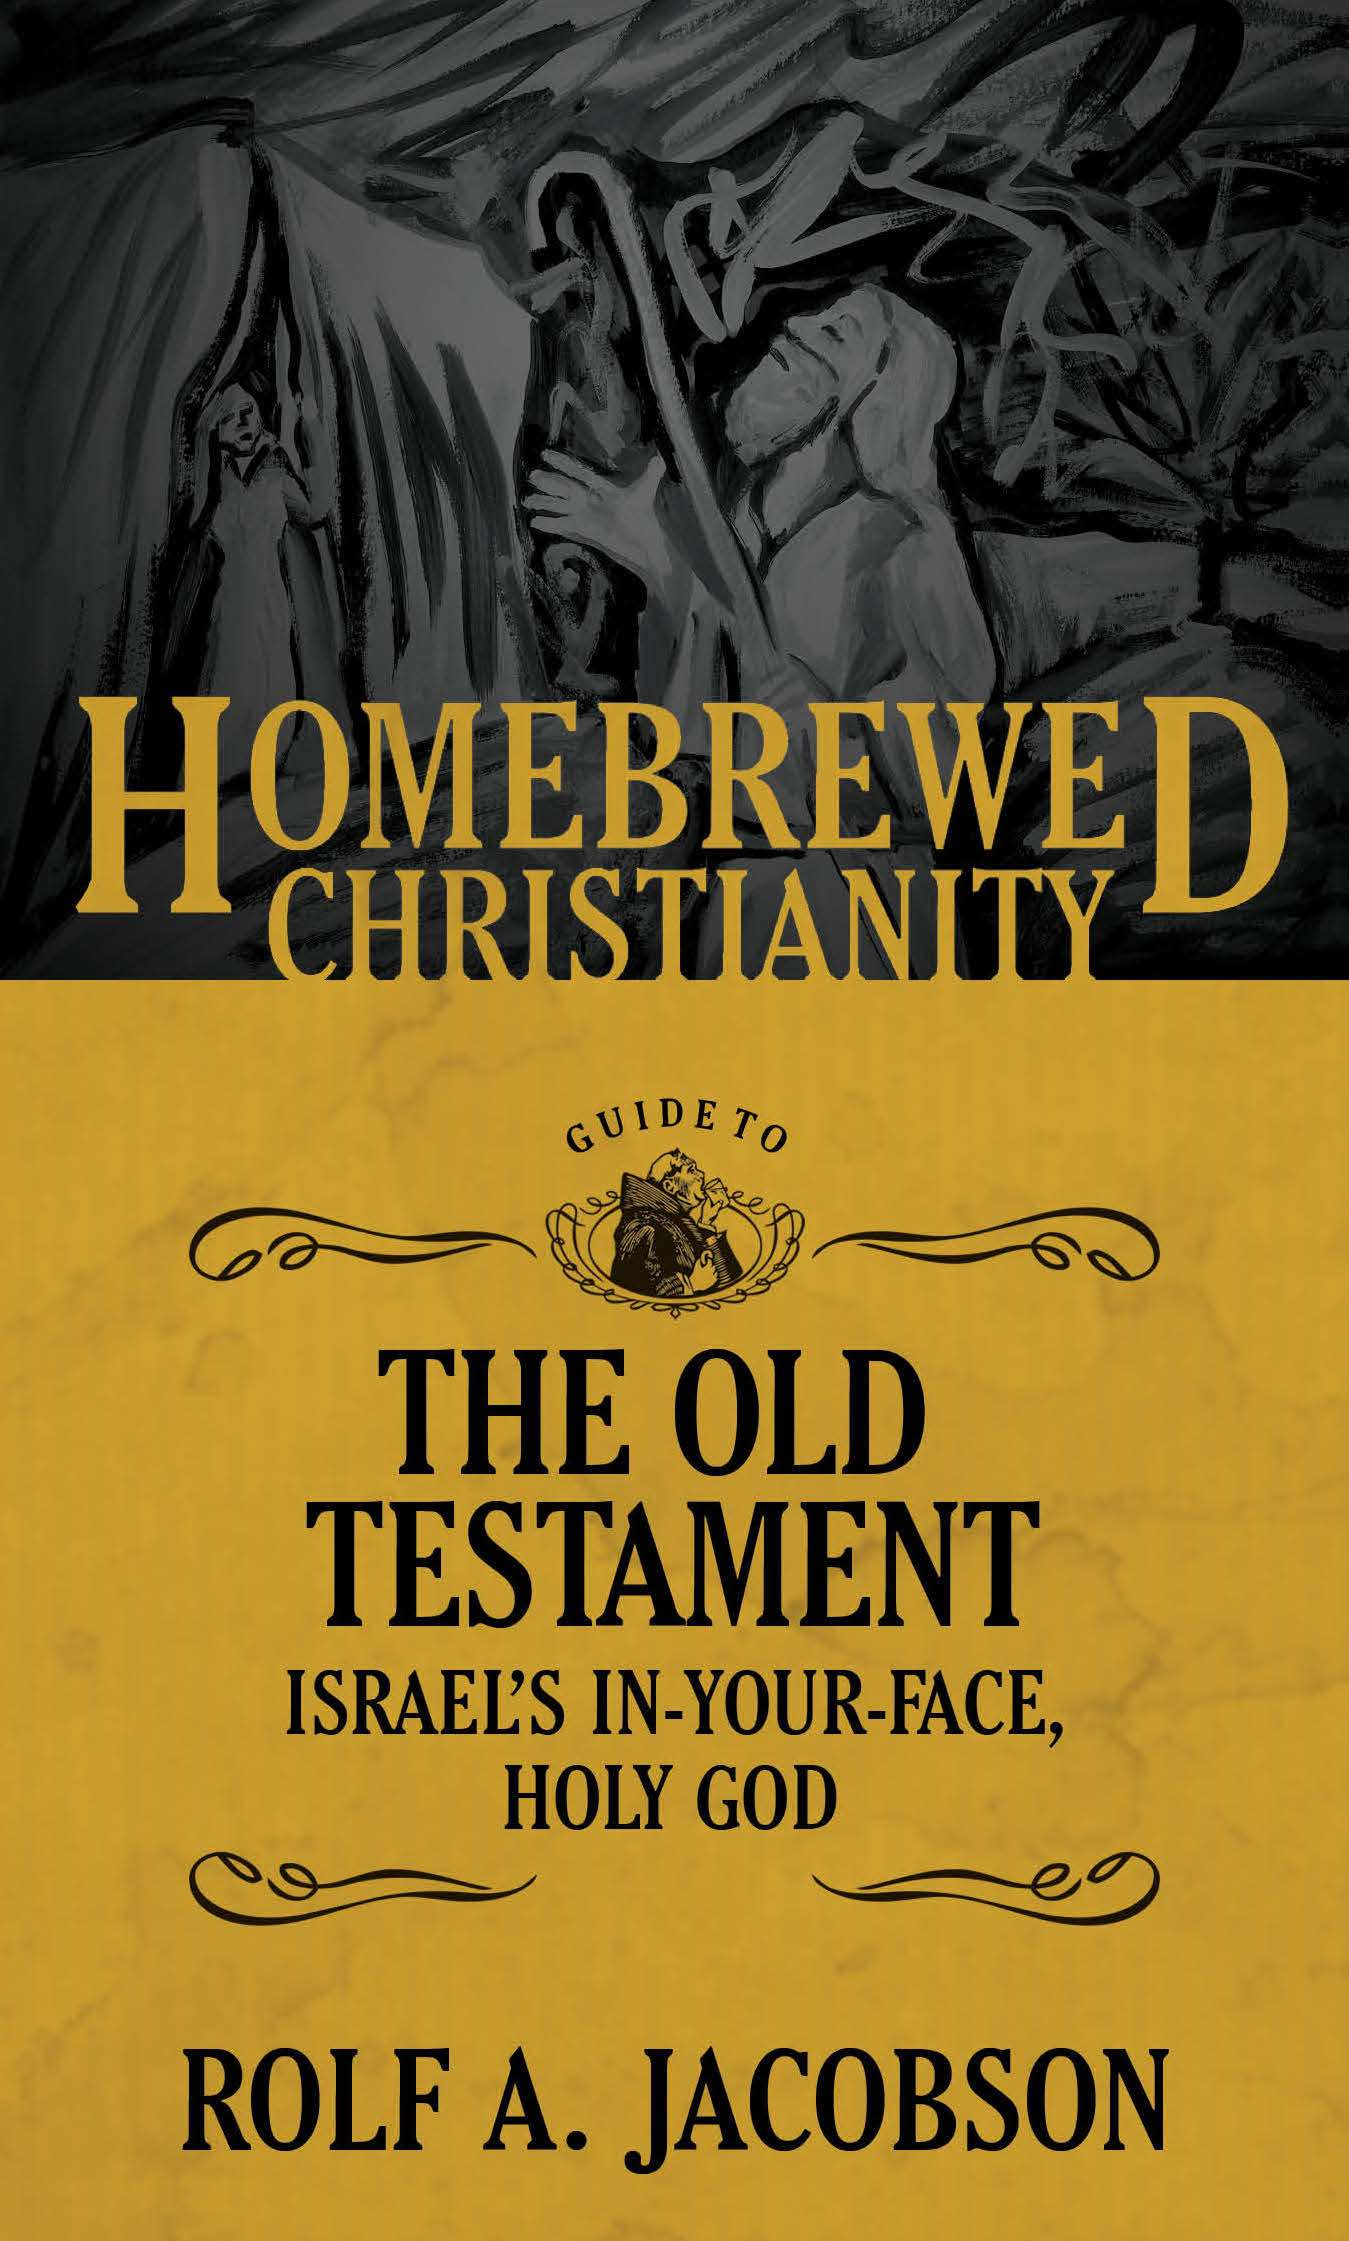 THE HOMEBREWED CHRISTIANITY GUIDE TO THE OLD TESTAMENT: ISRAEL'S  IN-YOUR-FACE, HOLY GOD · ROLF JACOBSON / KARL JACOBSON $23.00*